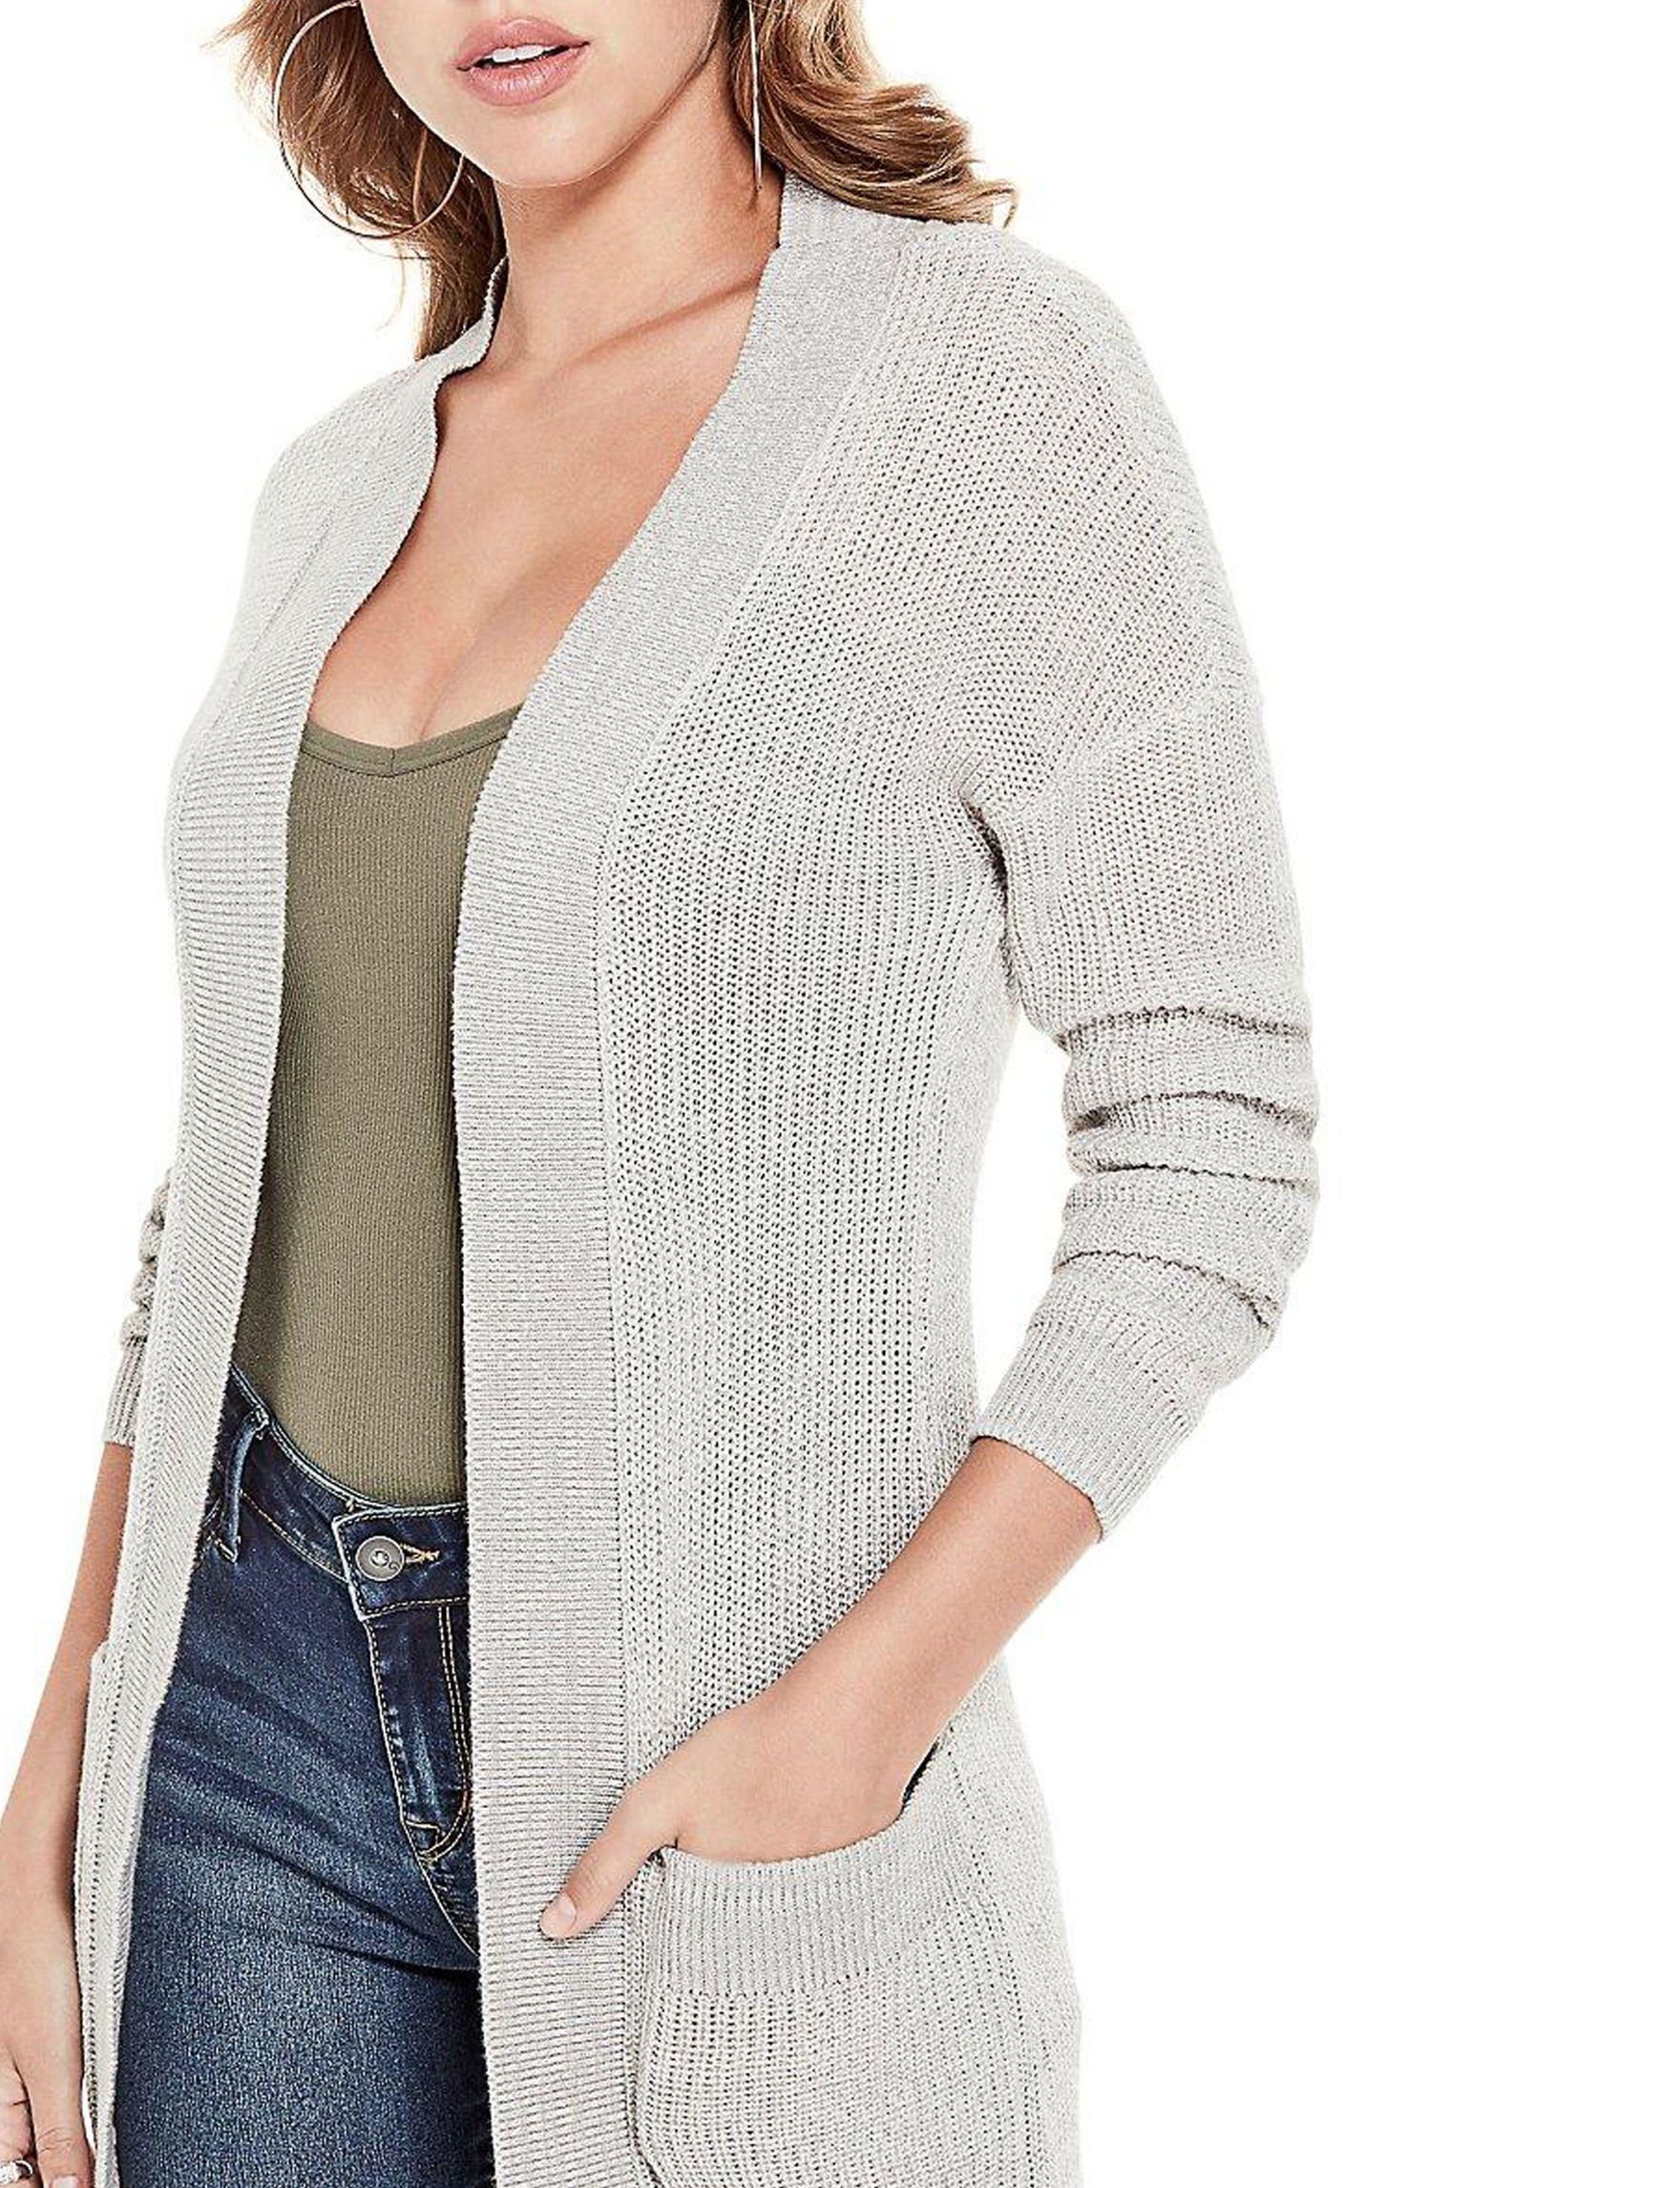 G by Guess Grey Cardigans